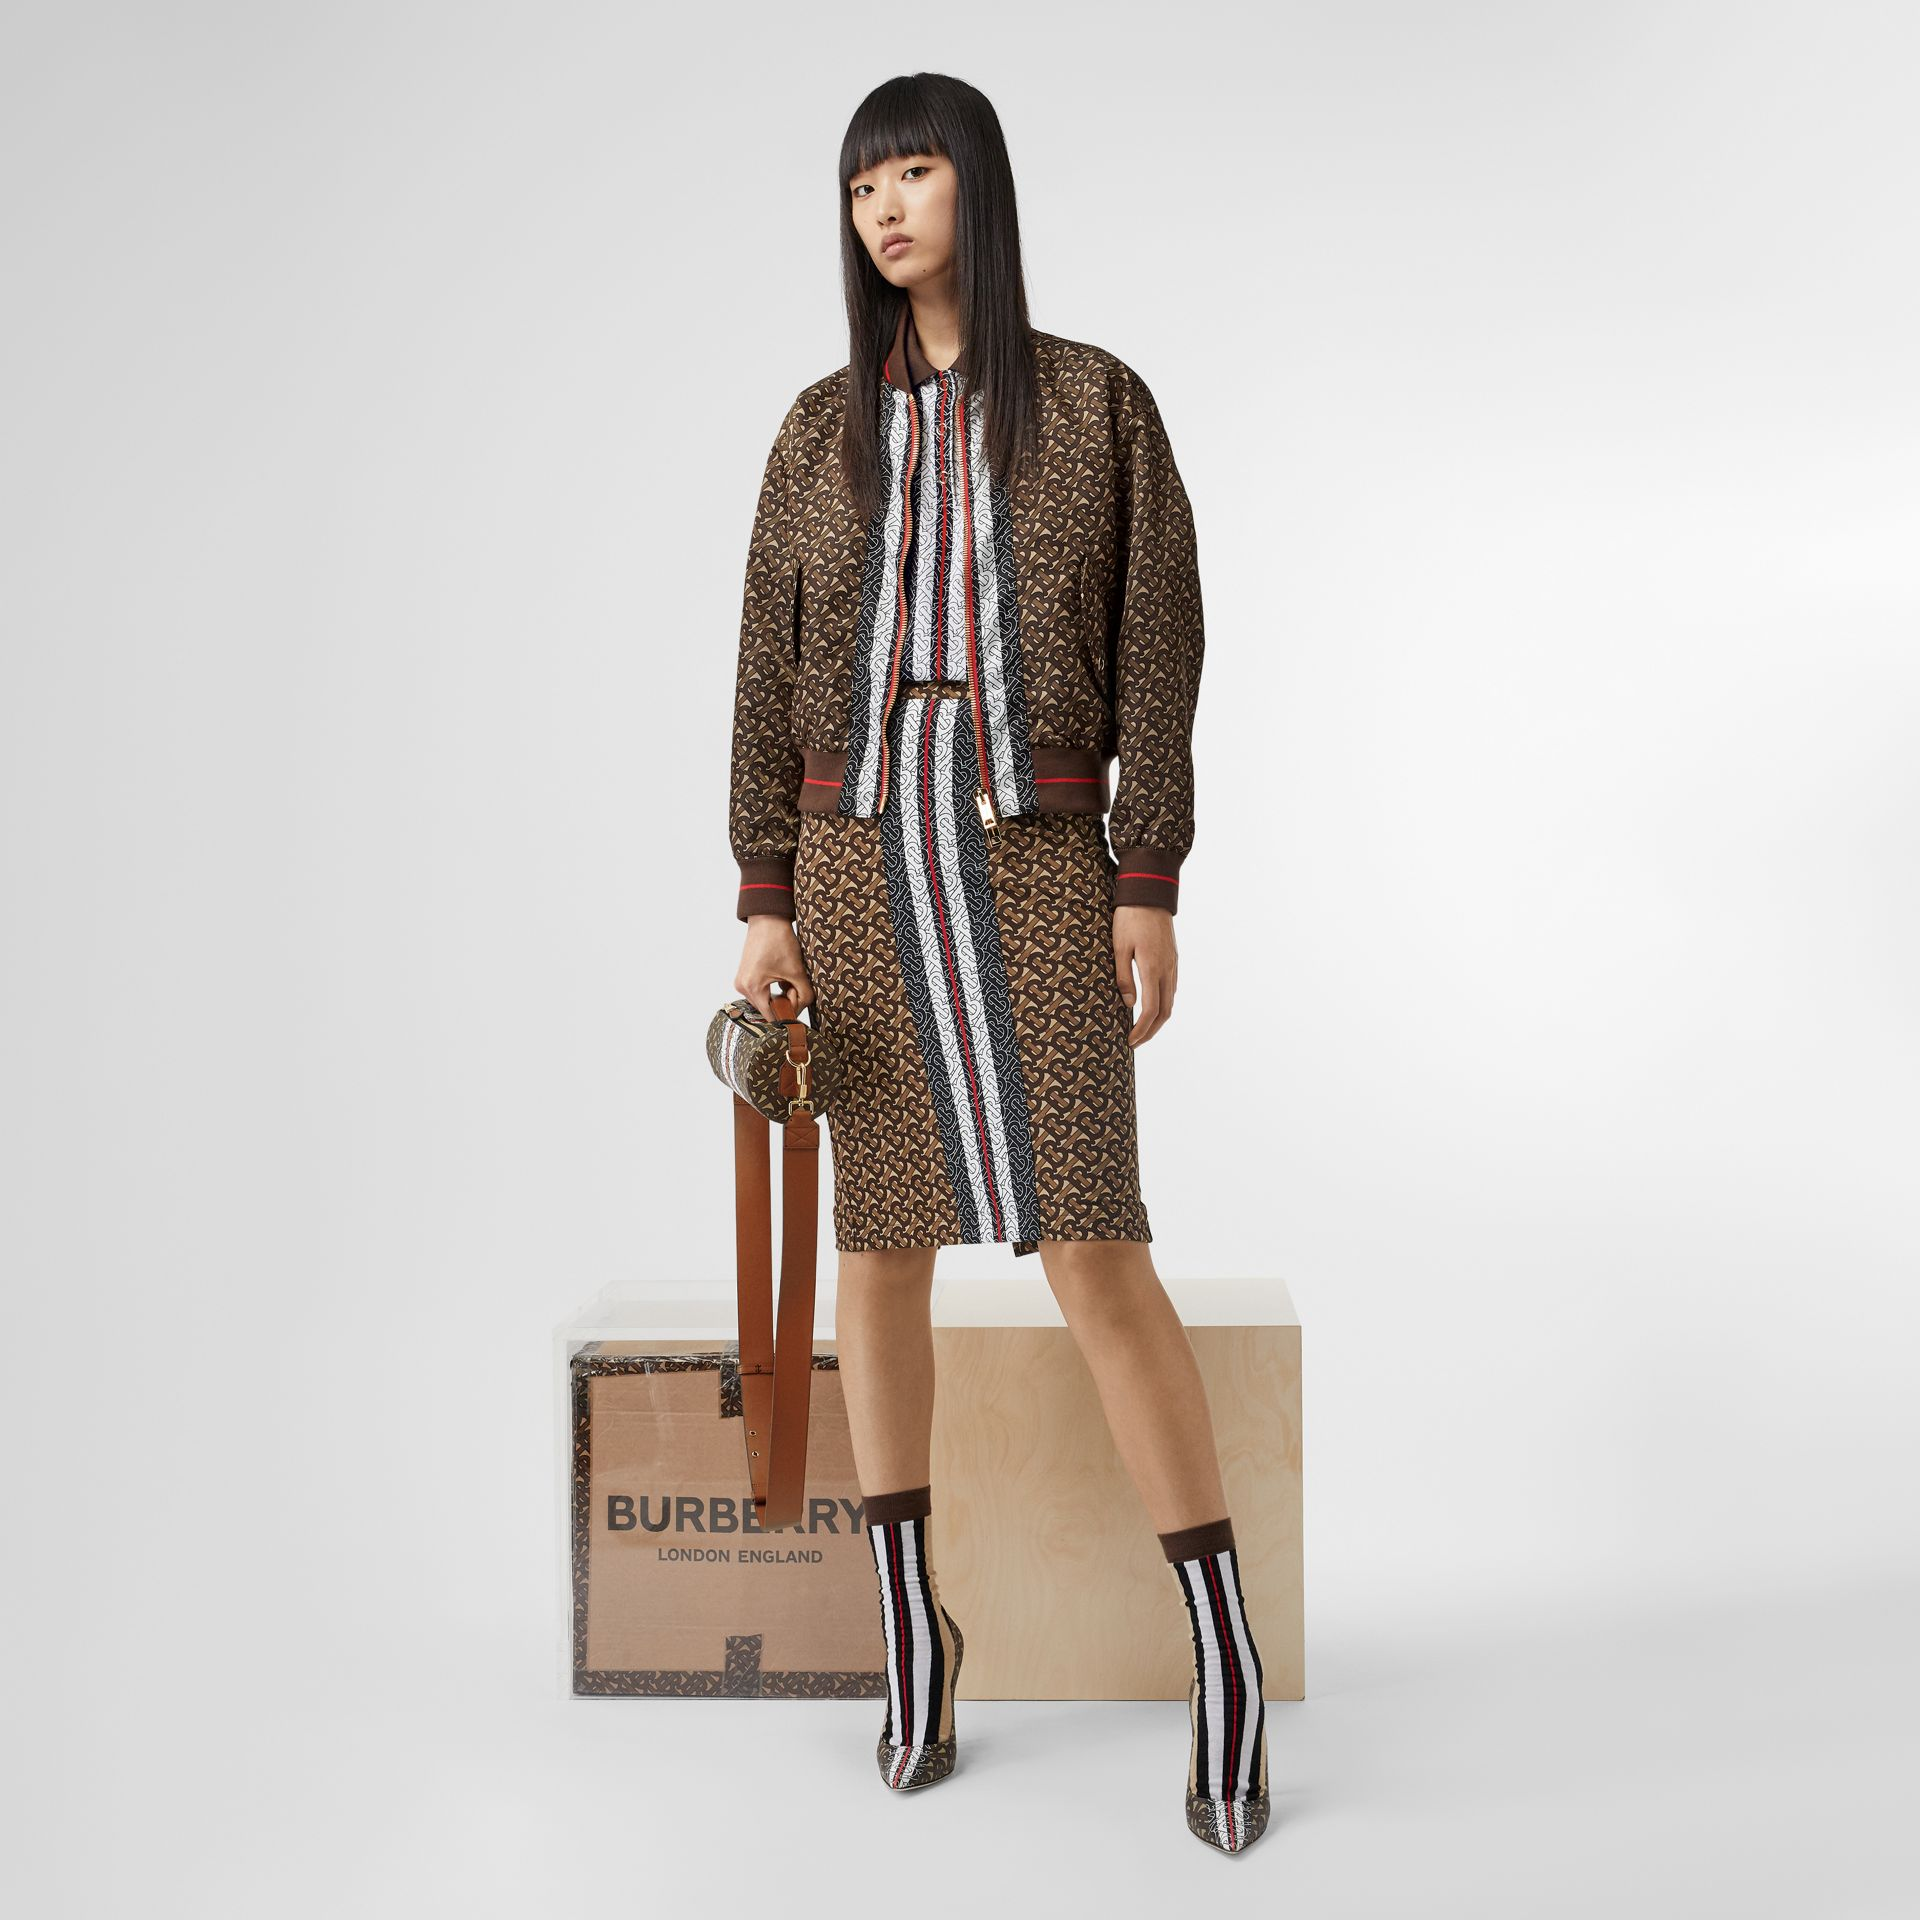 Monogram Stripe Print Nylon Bomber Jacket in Bridle Brown - Women | Burberry - gallery image 7